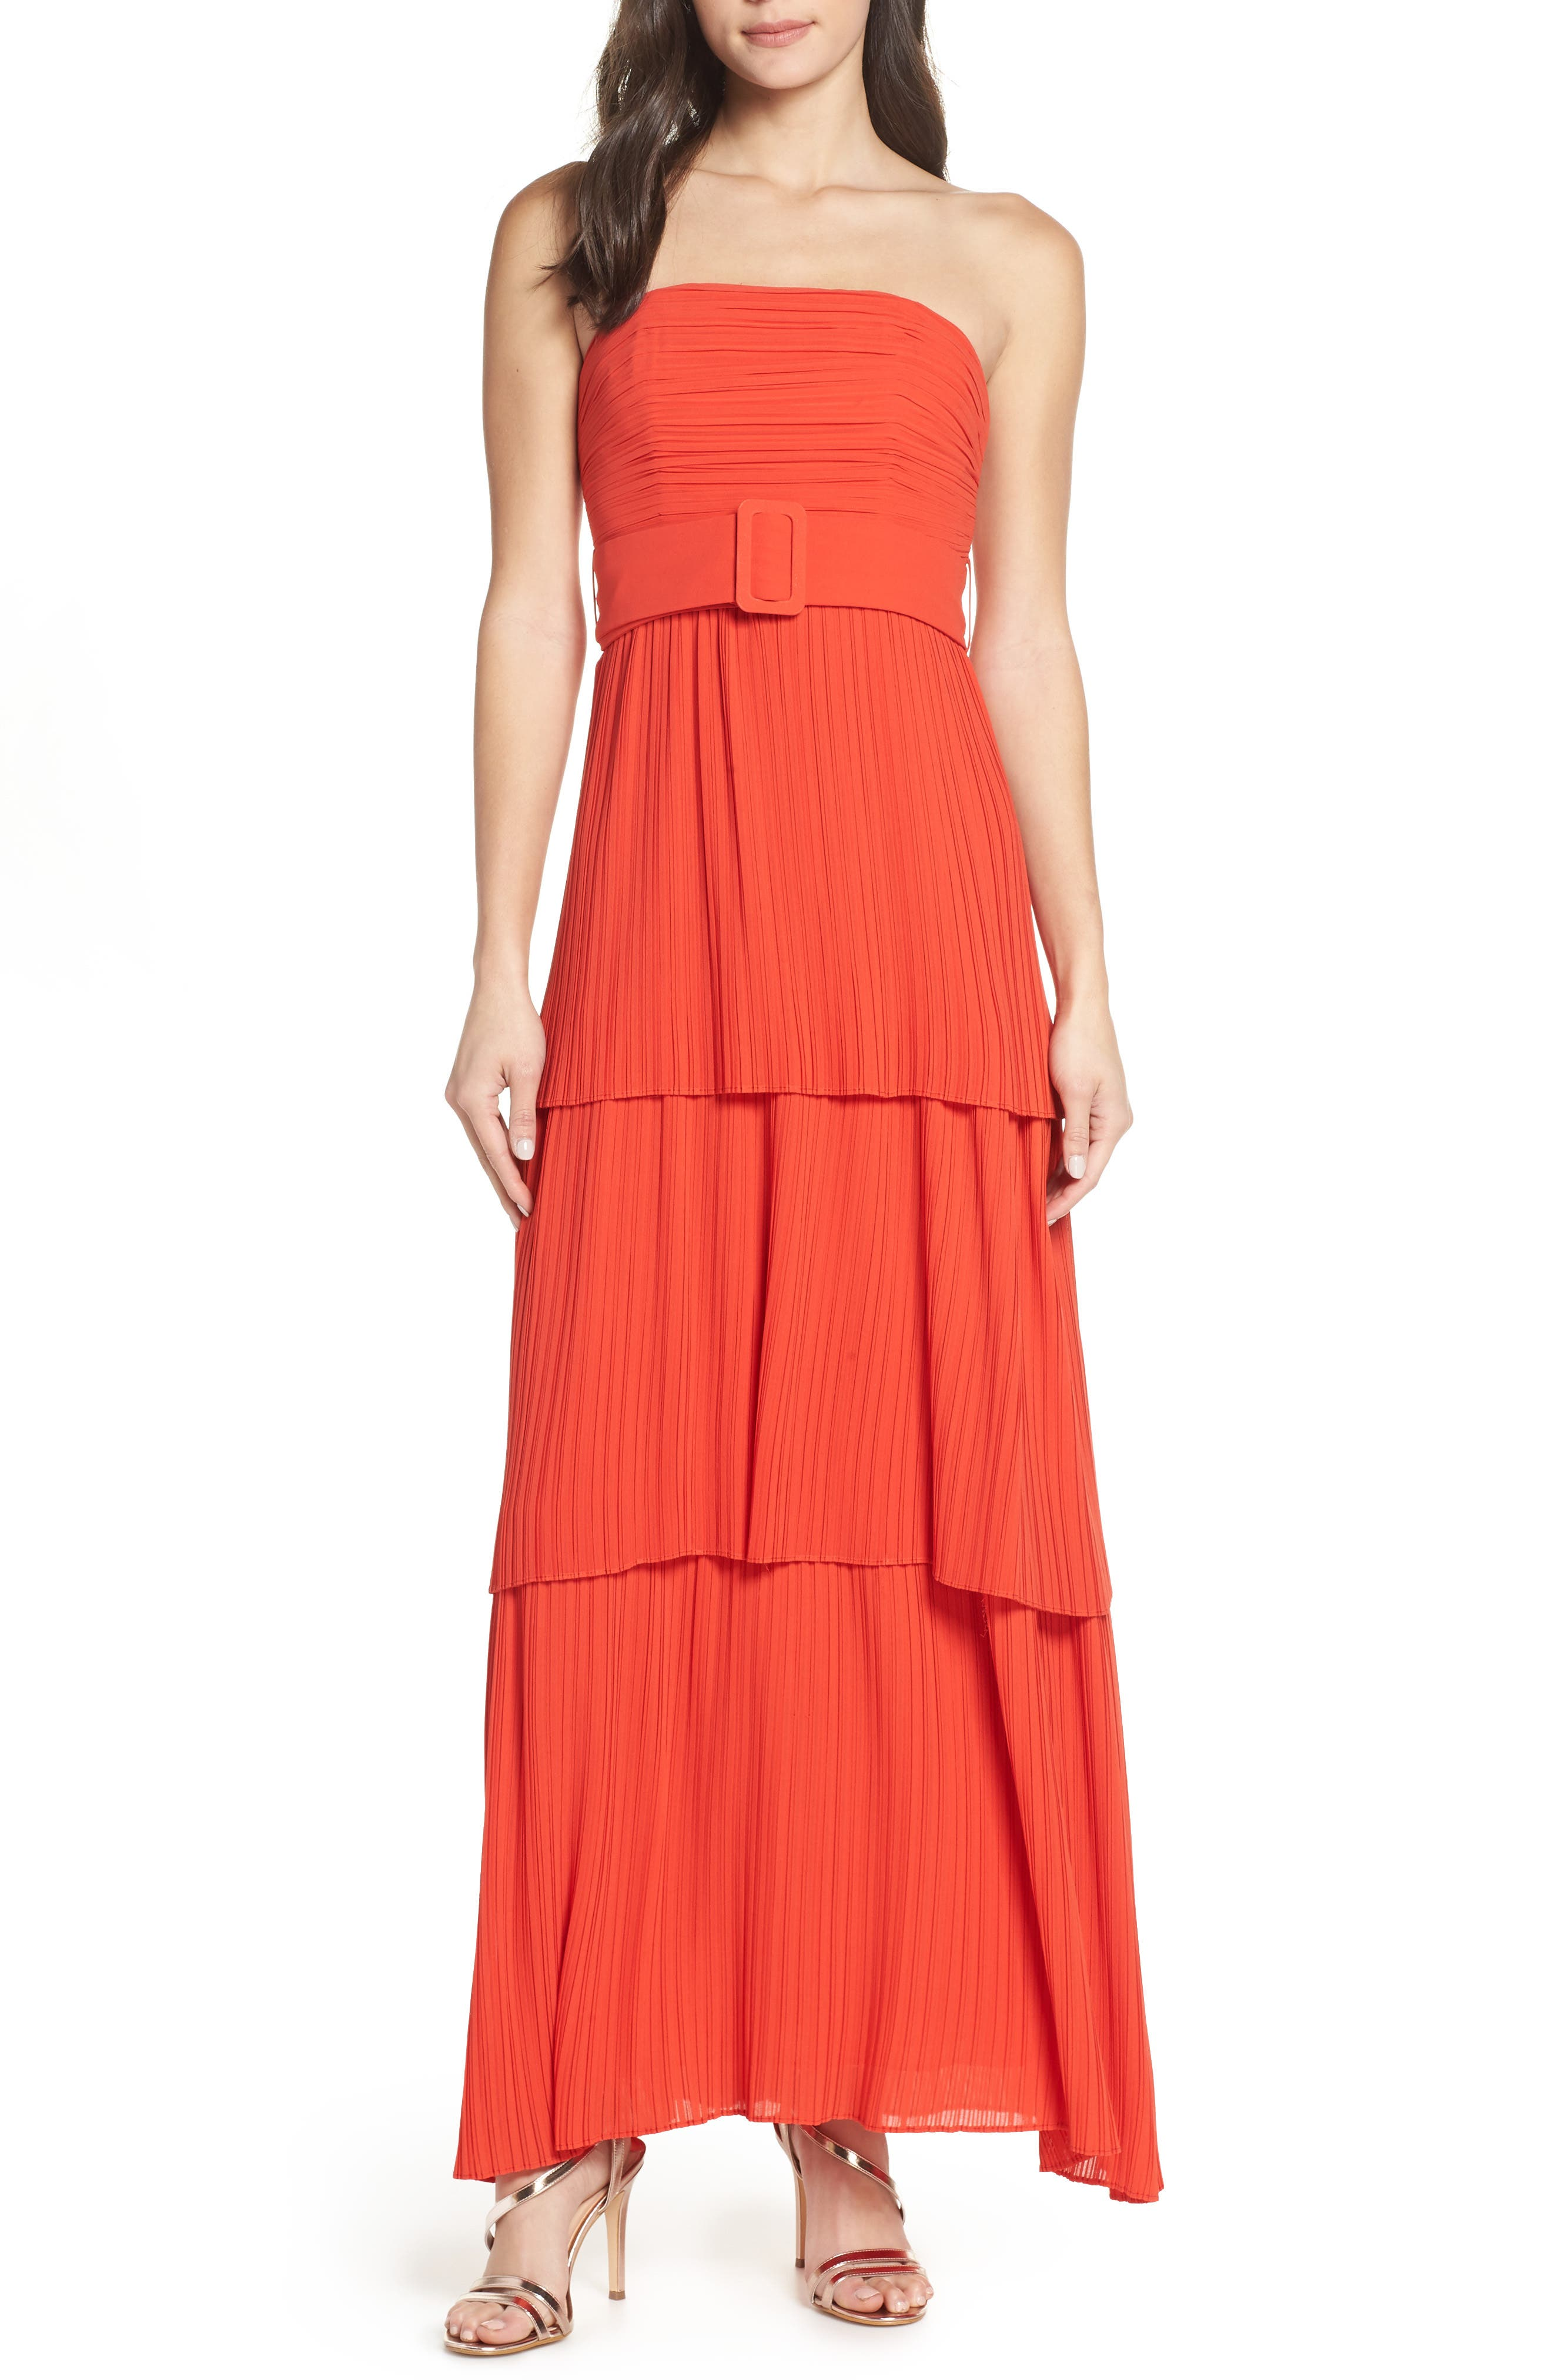 Fame And Partners The Whittier Evening Dress, Orange